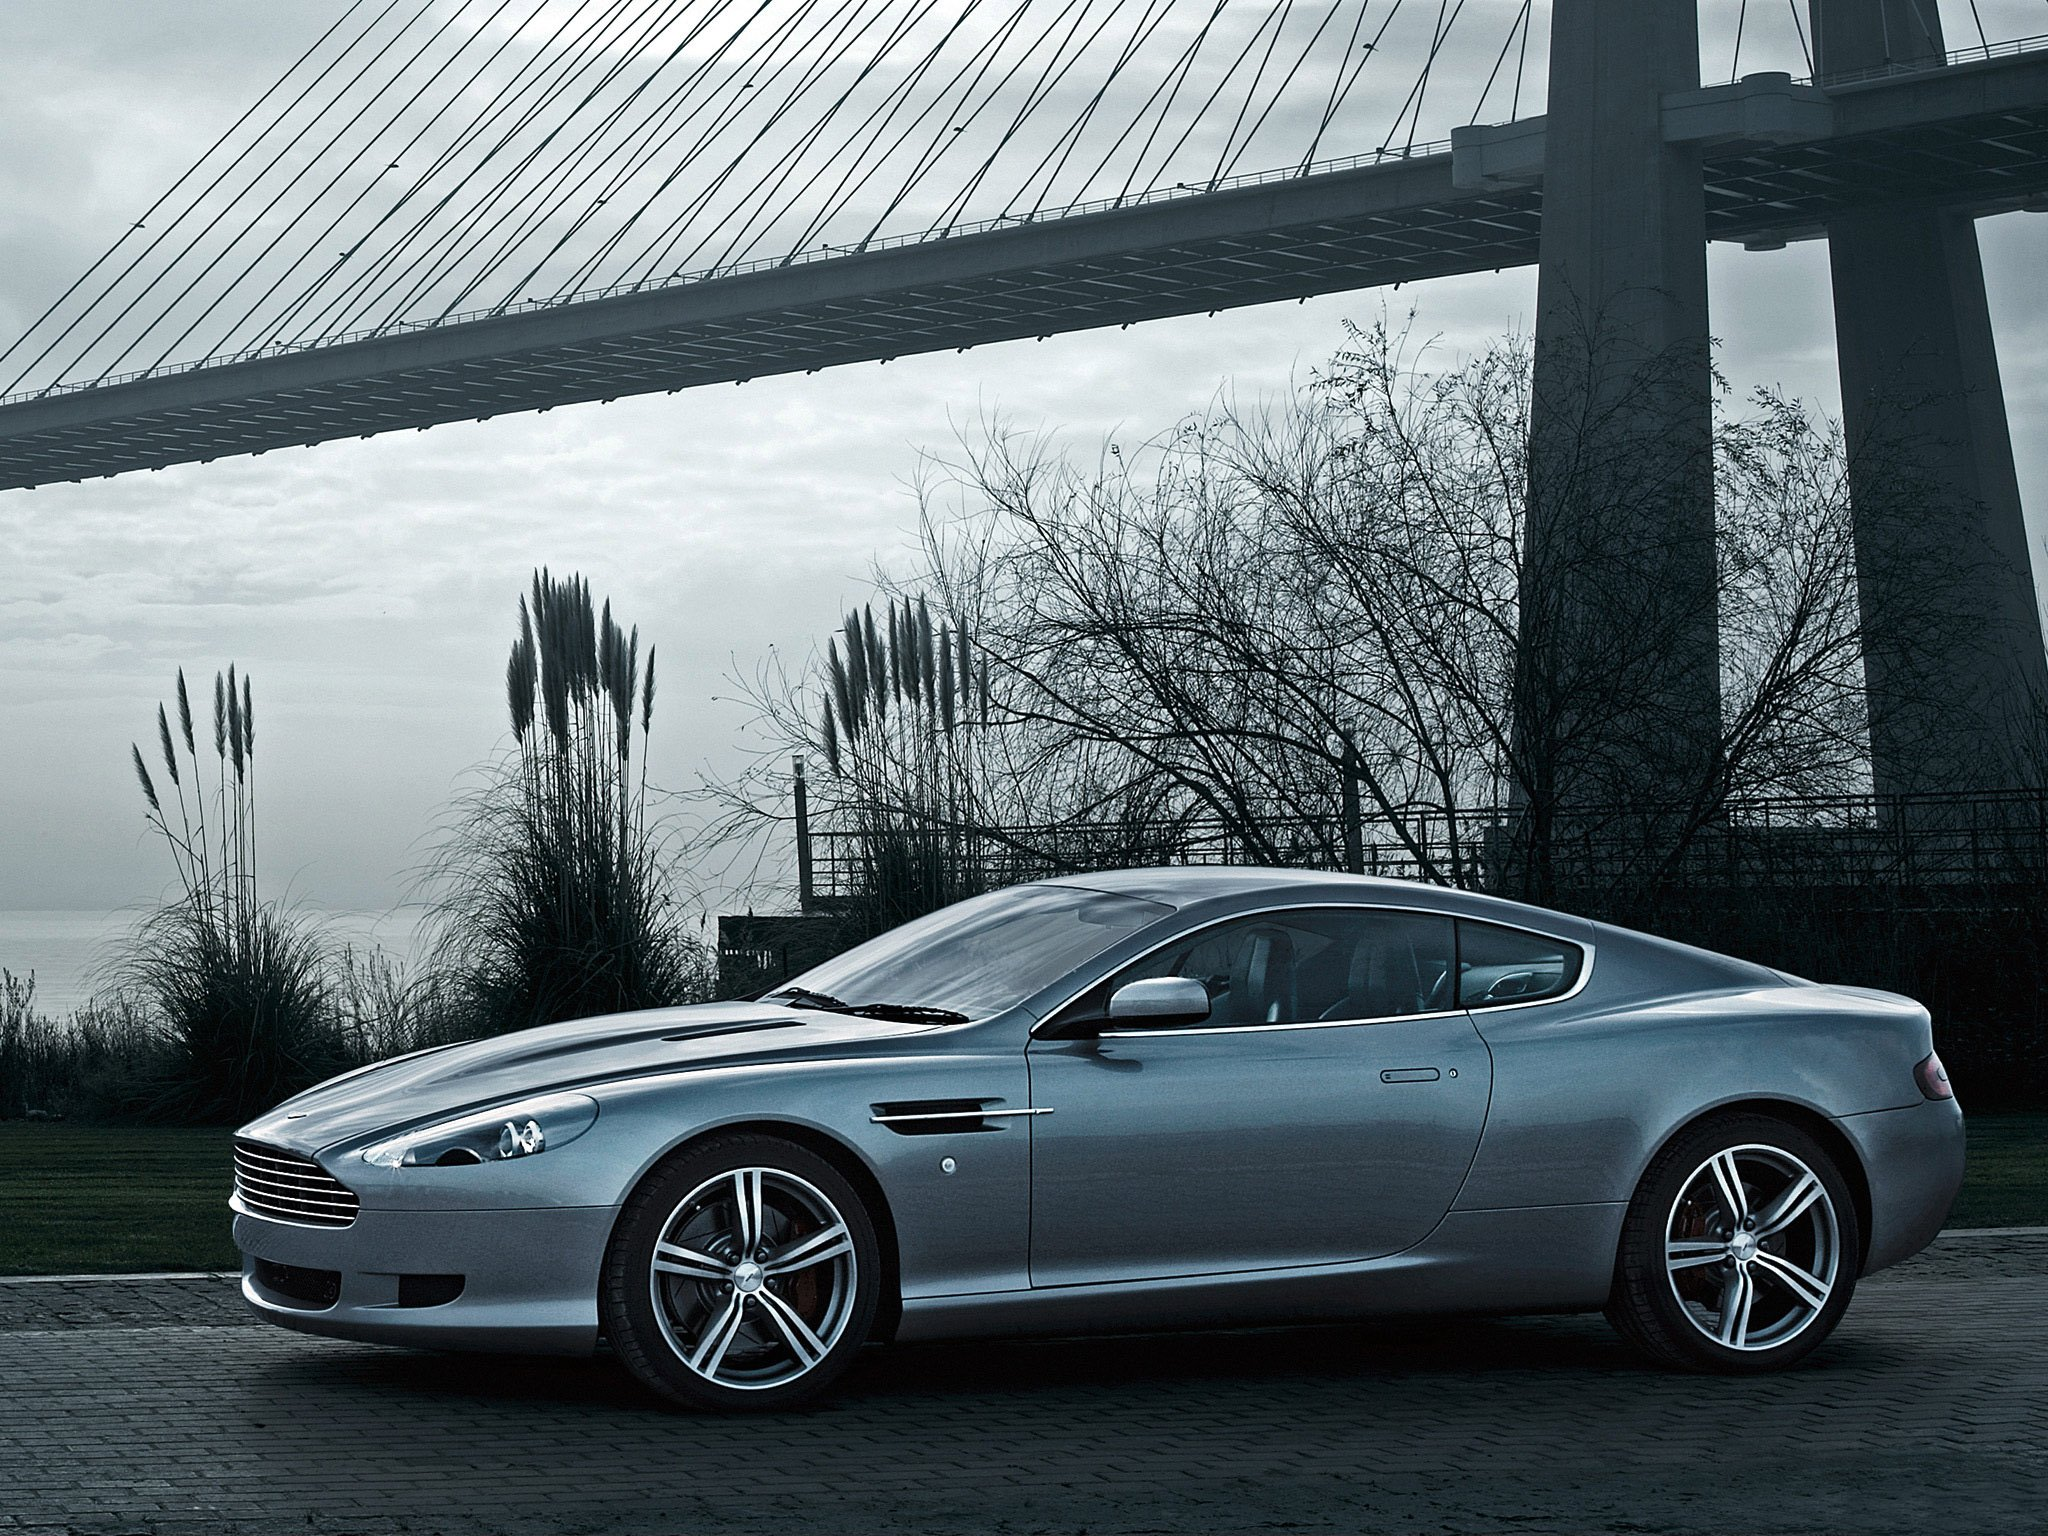 aston martin db9 coupe 2009 images #3